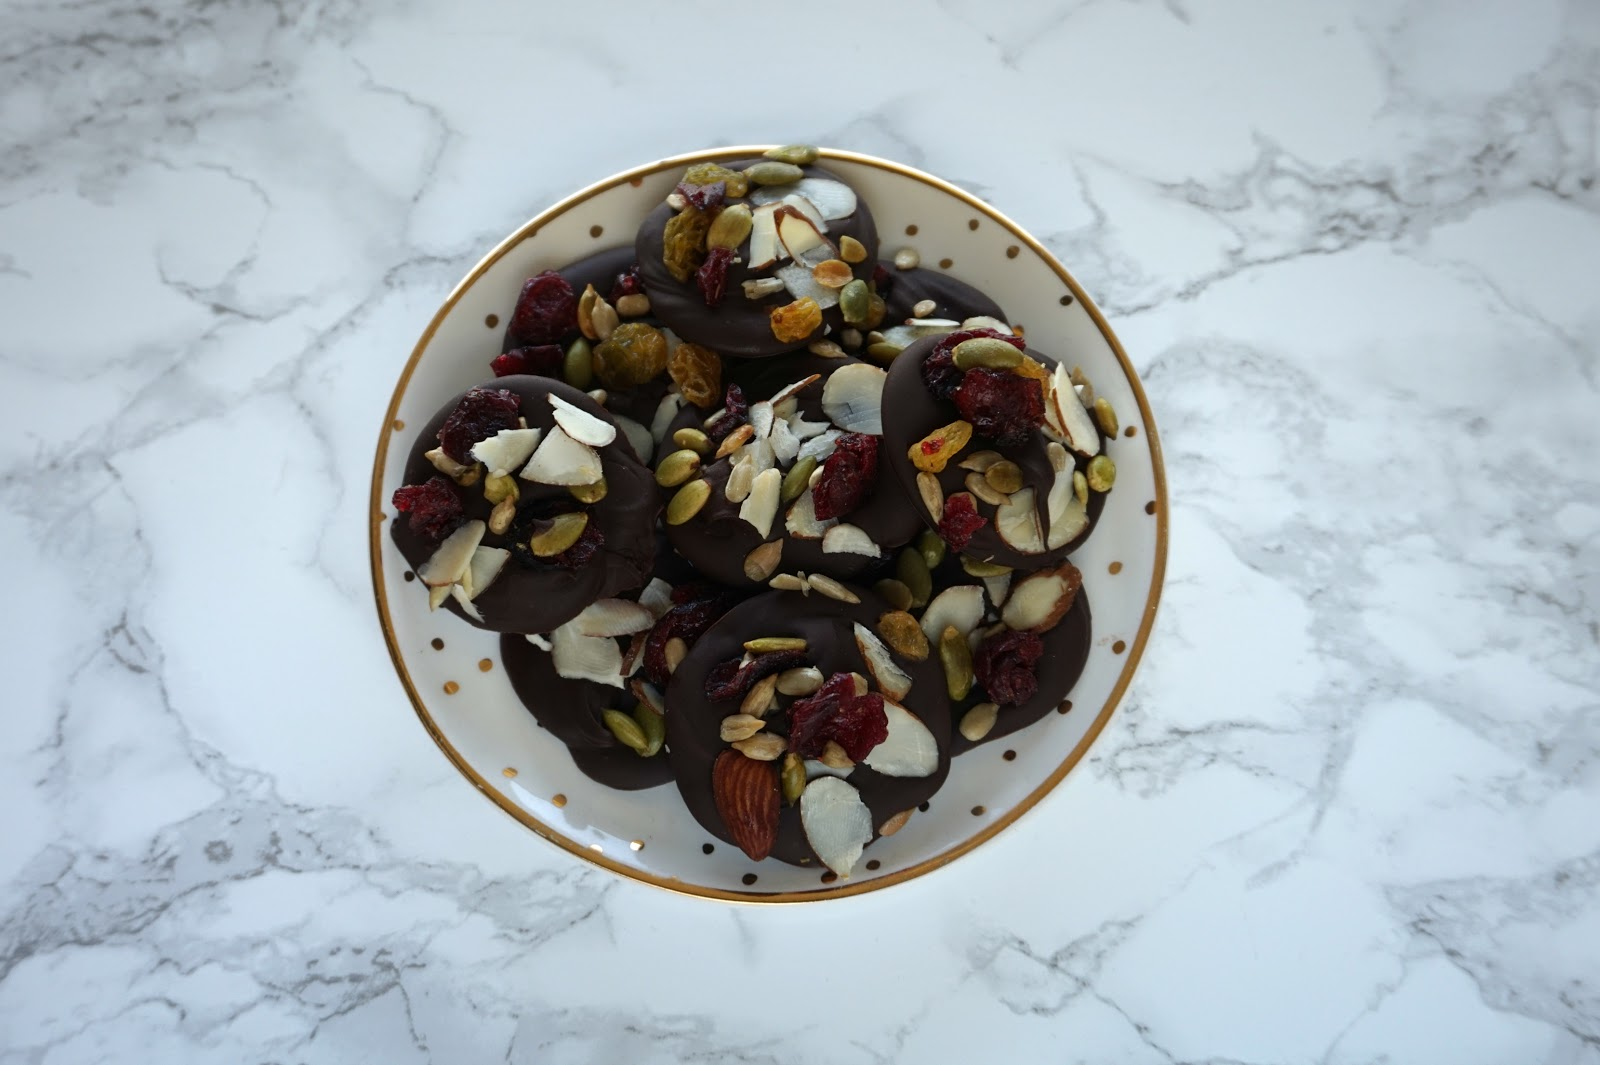 Easy & Healthy Dark Chocolate Bites // Dark Chocolate Bites With Nuts & Fruit // Easy & Healthy Sweet Treat   beautywithlily.com